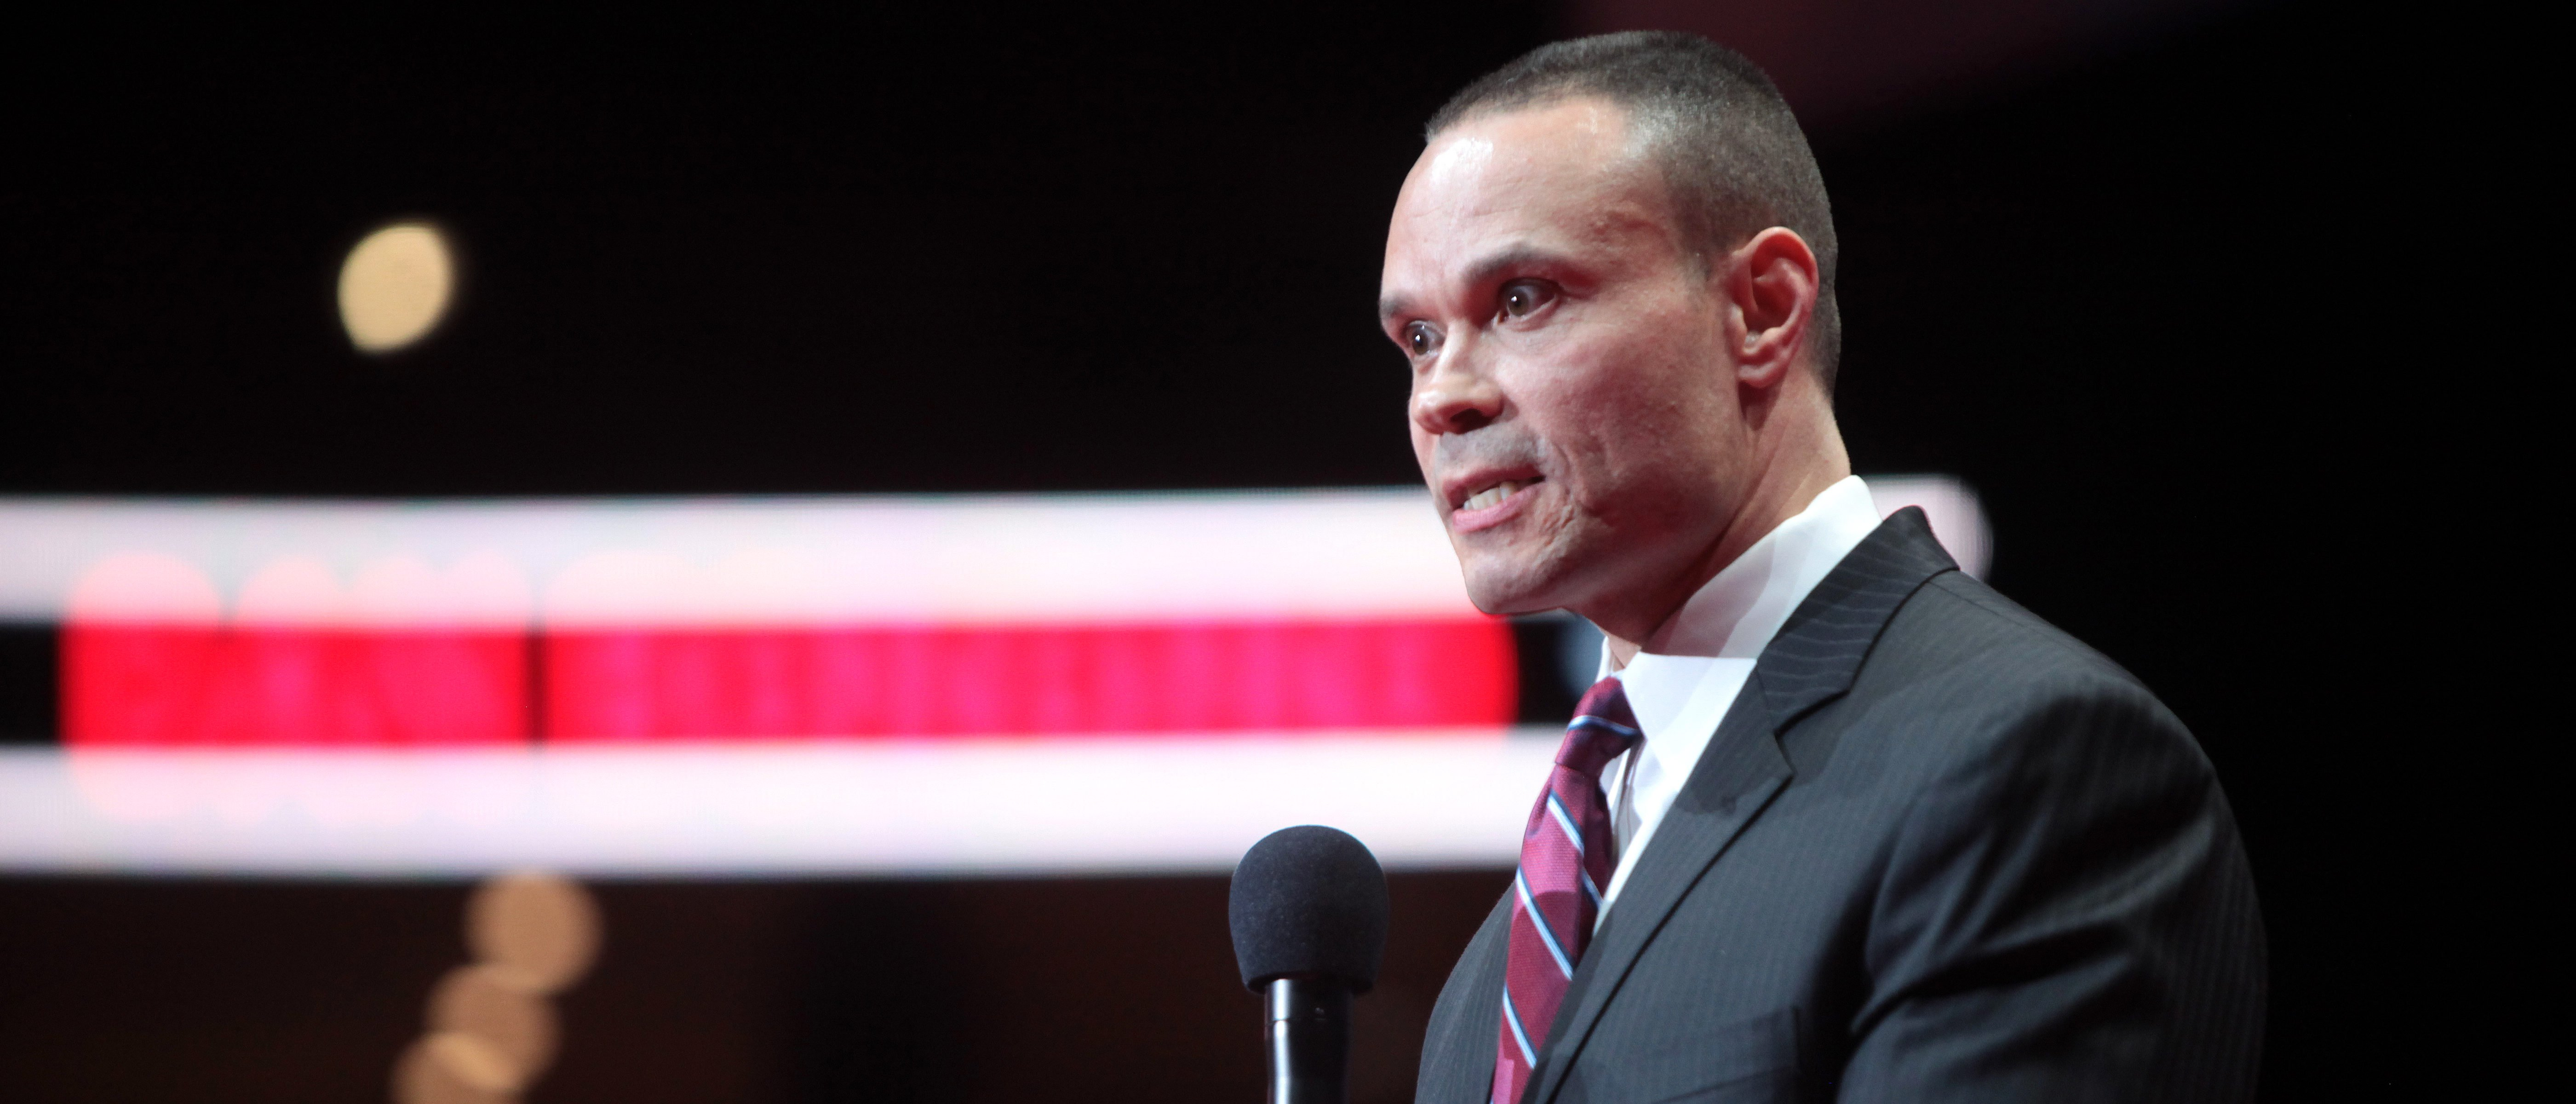 Dan Bongino Puts California Governor In His Place Over Illegal Immigrant Pardons  Its An Abyss Of Stupidity